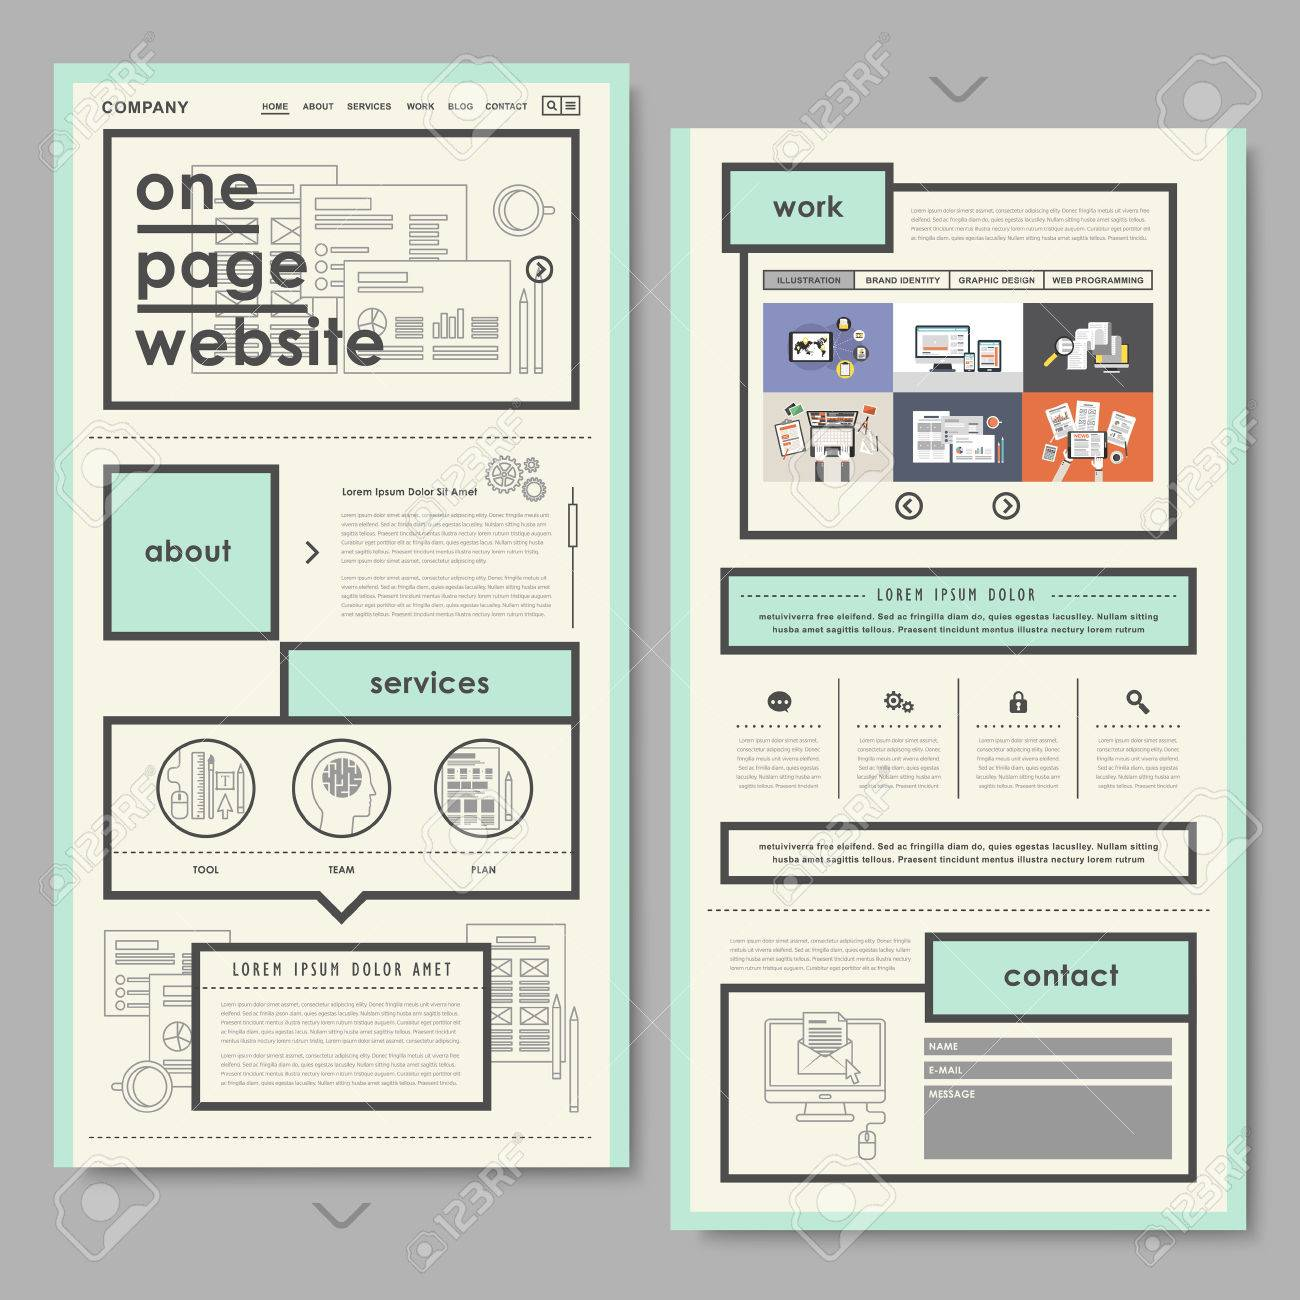 Retro Document Style One Page Website Design In Flat Royalty Free ...